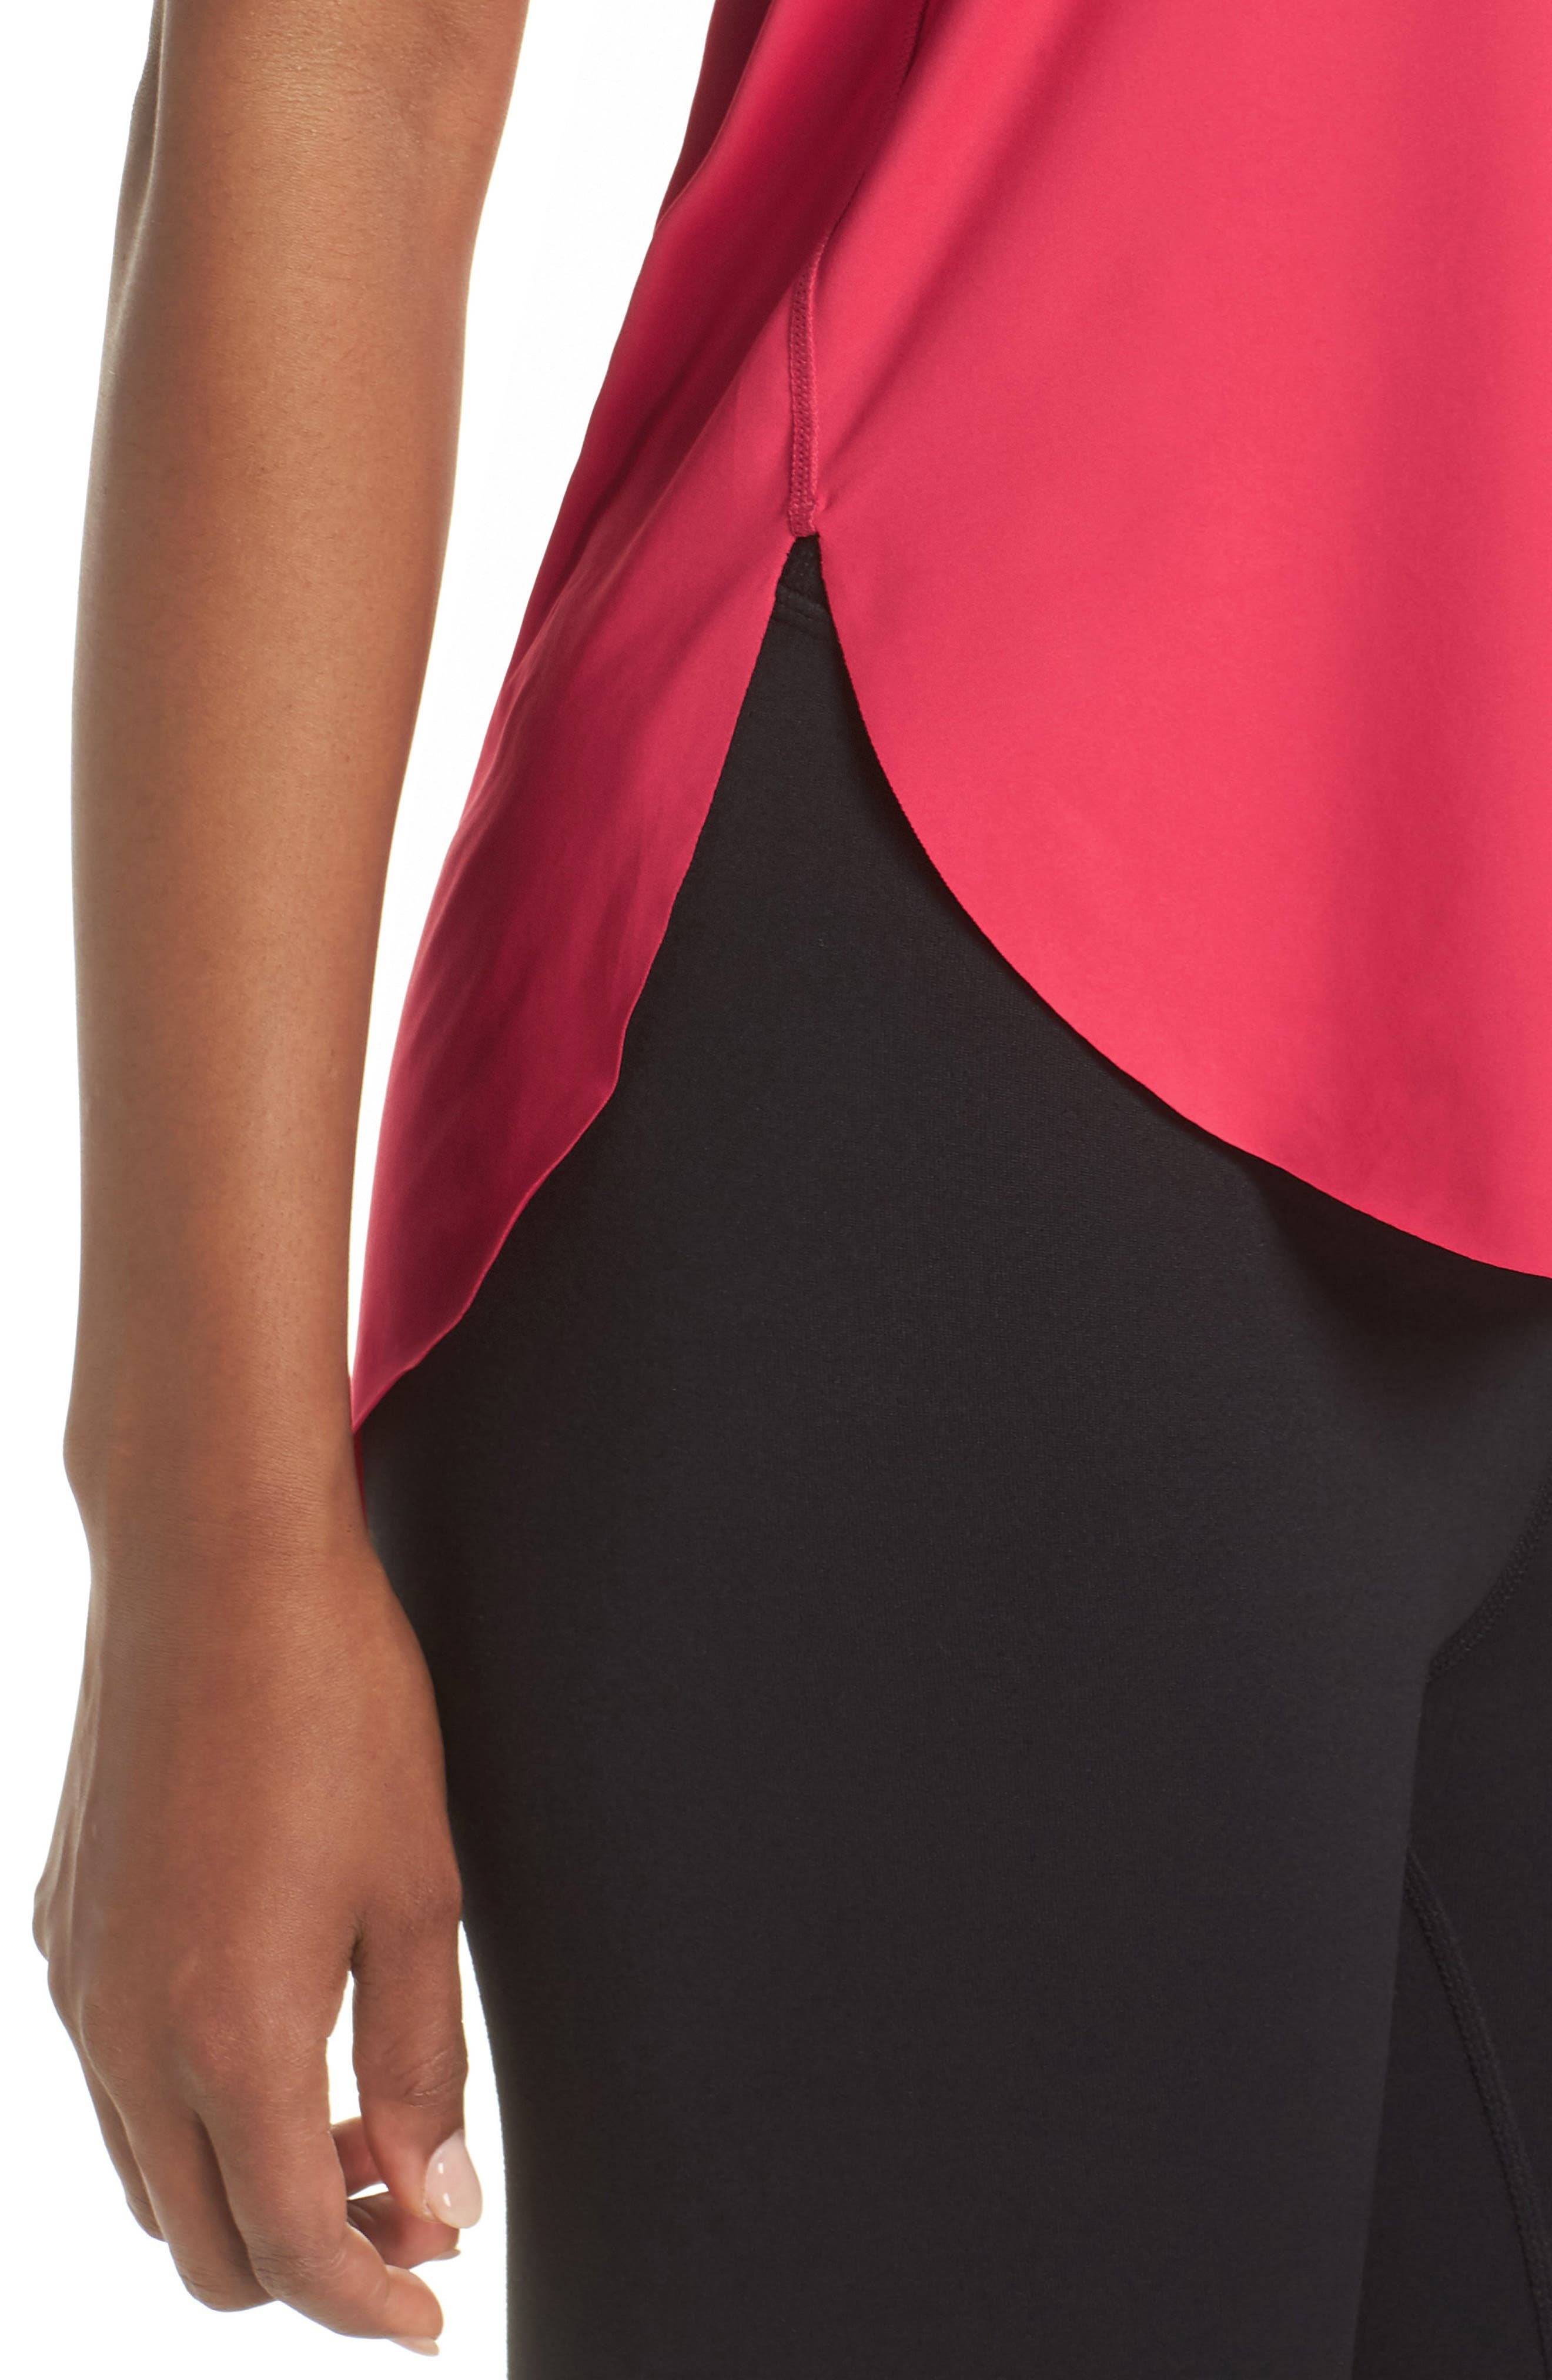 Fera Perforated Tank,                             Alternate thumbnail 4, color,                             Red Desire